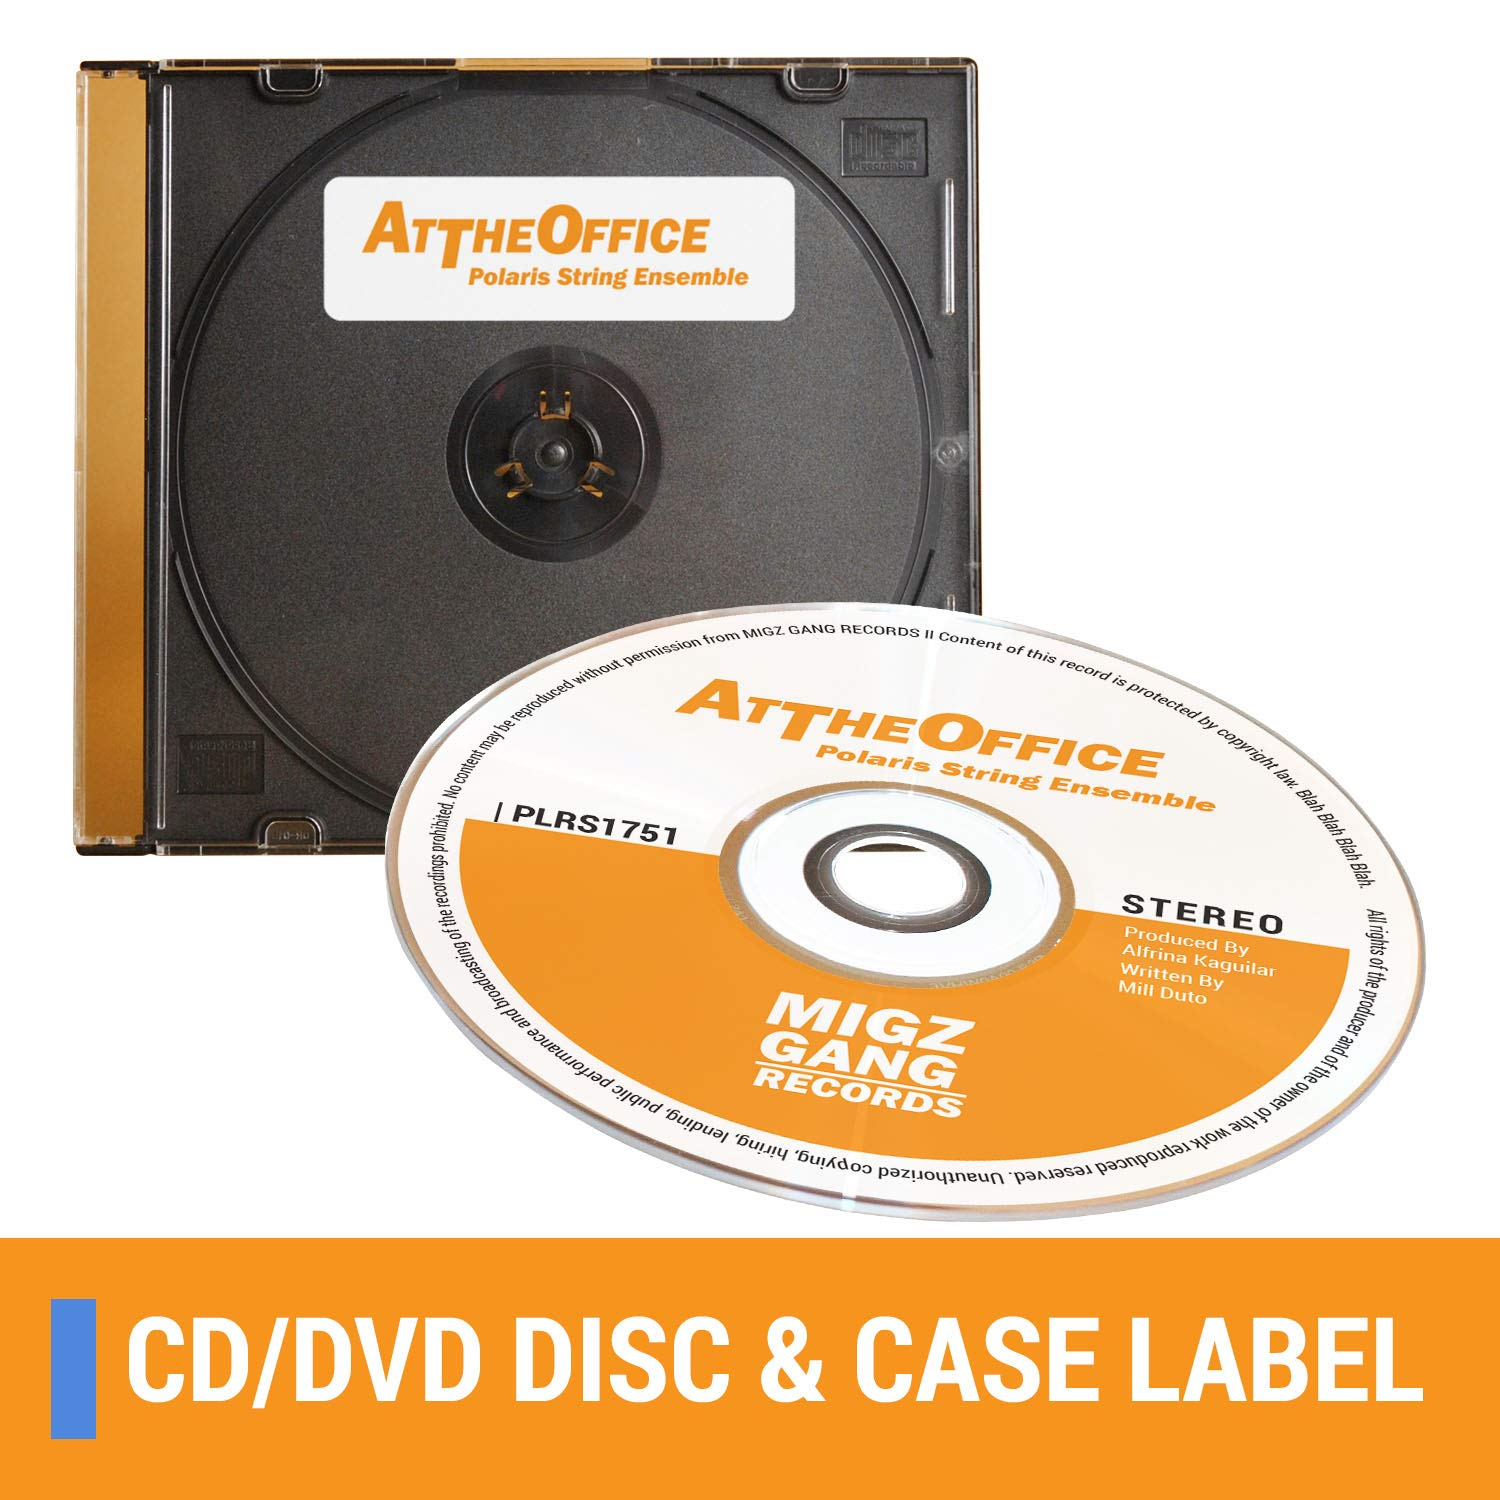 OfficeSmartLabels Neato CLP-192301 3UP Compatible DISC CD DVD Labels with Case Labels for Laser & Inkjet Printers, 3 per Sheet, White, Matte, 450 ...